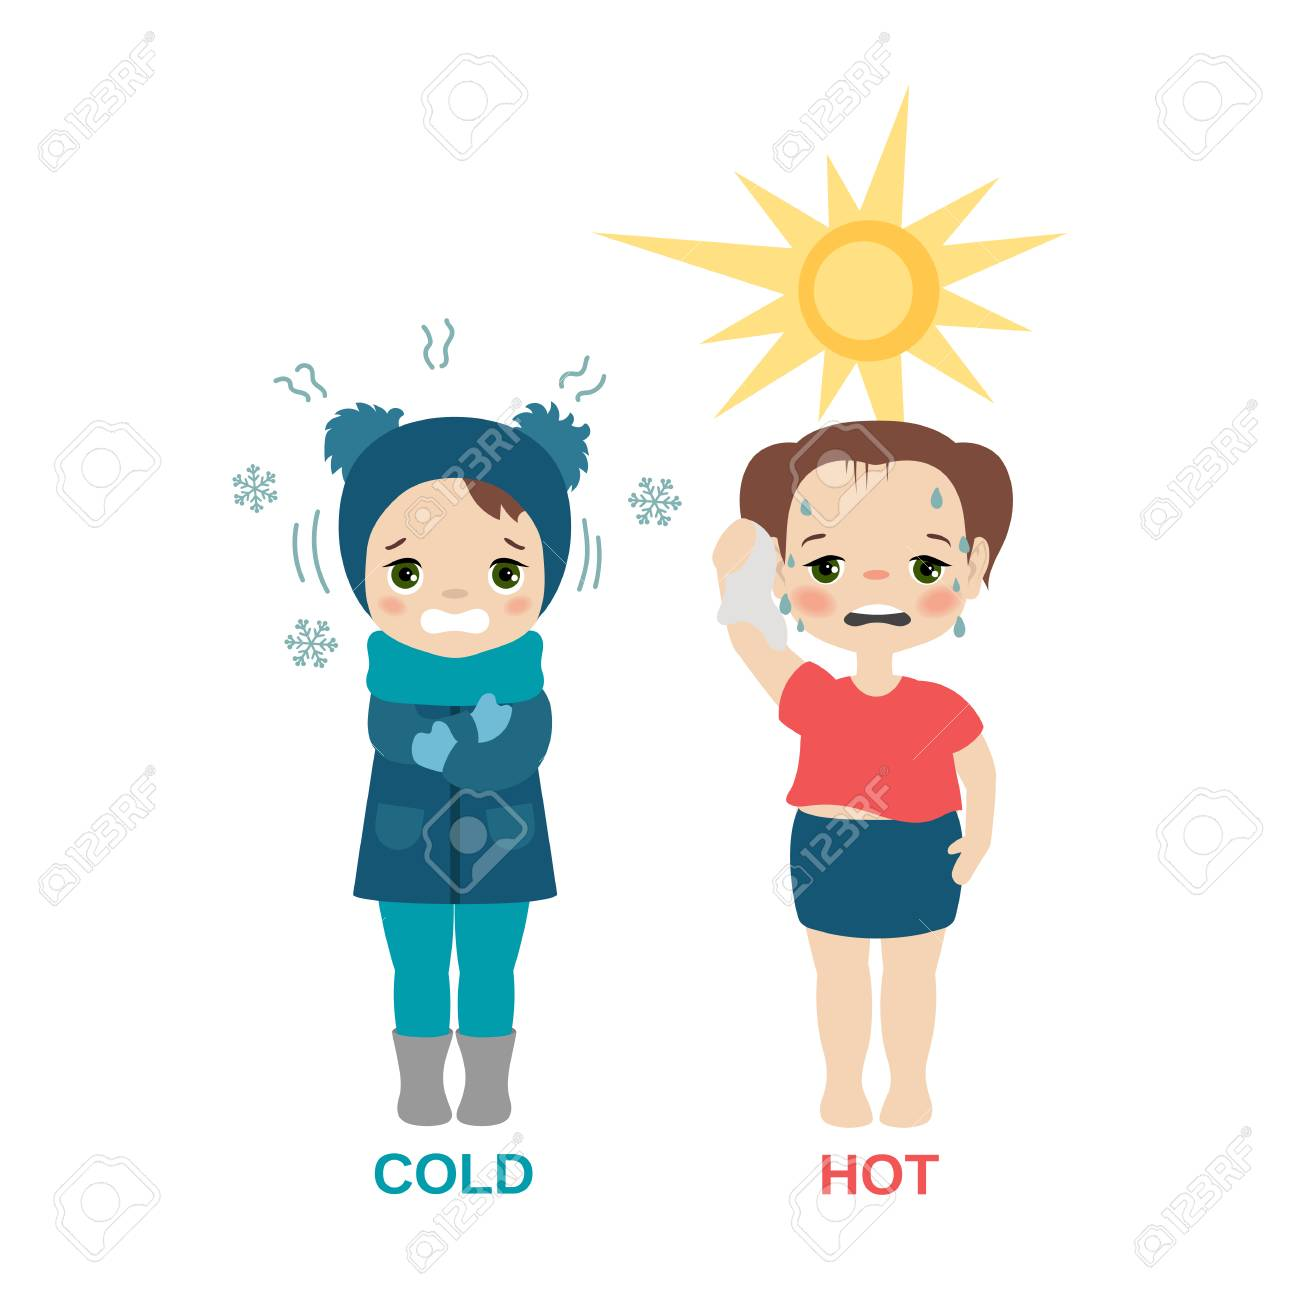 Kid In Hot And Cold Weather Cartoon Style Illustration Isolated